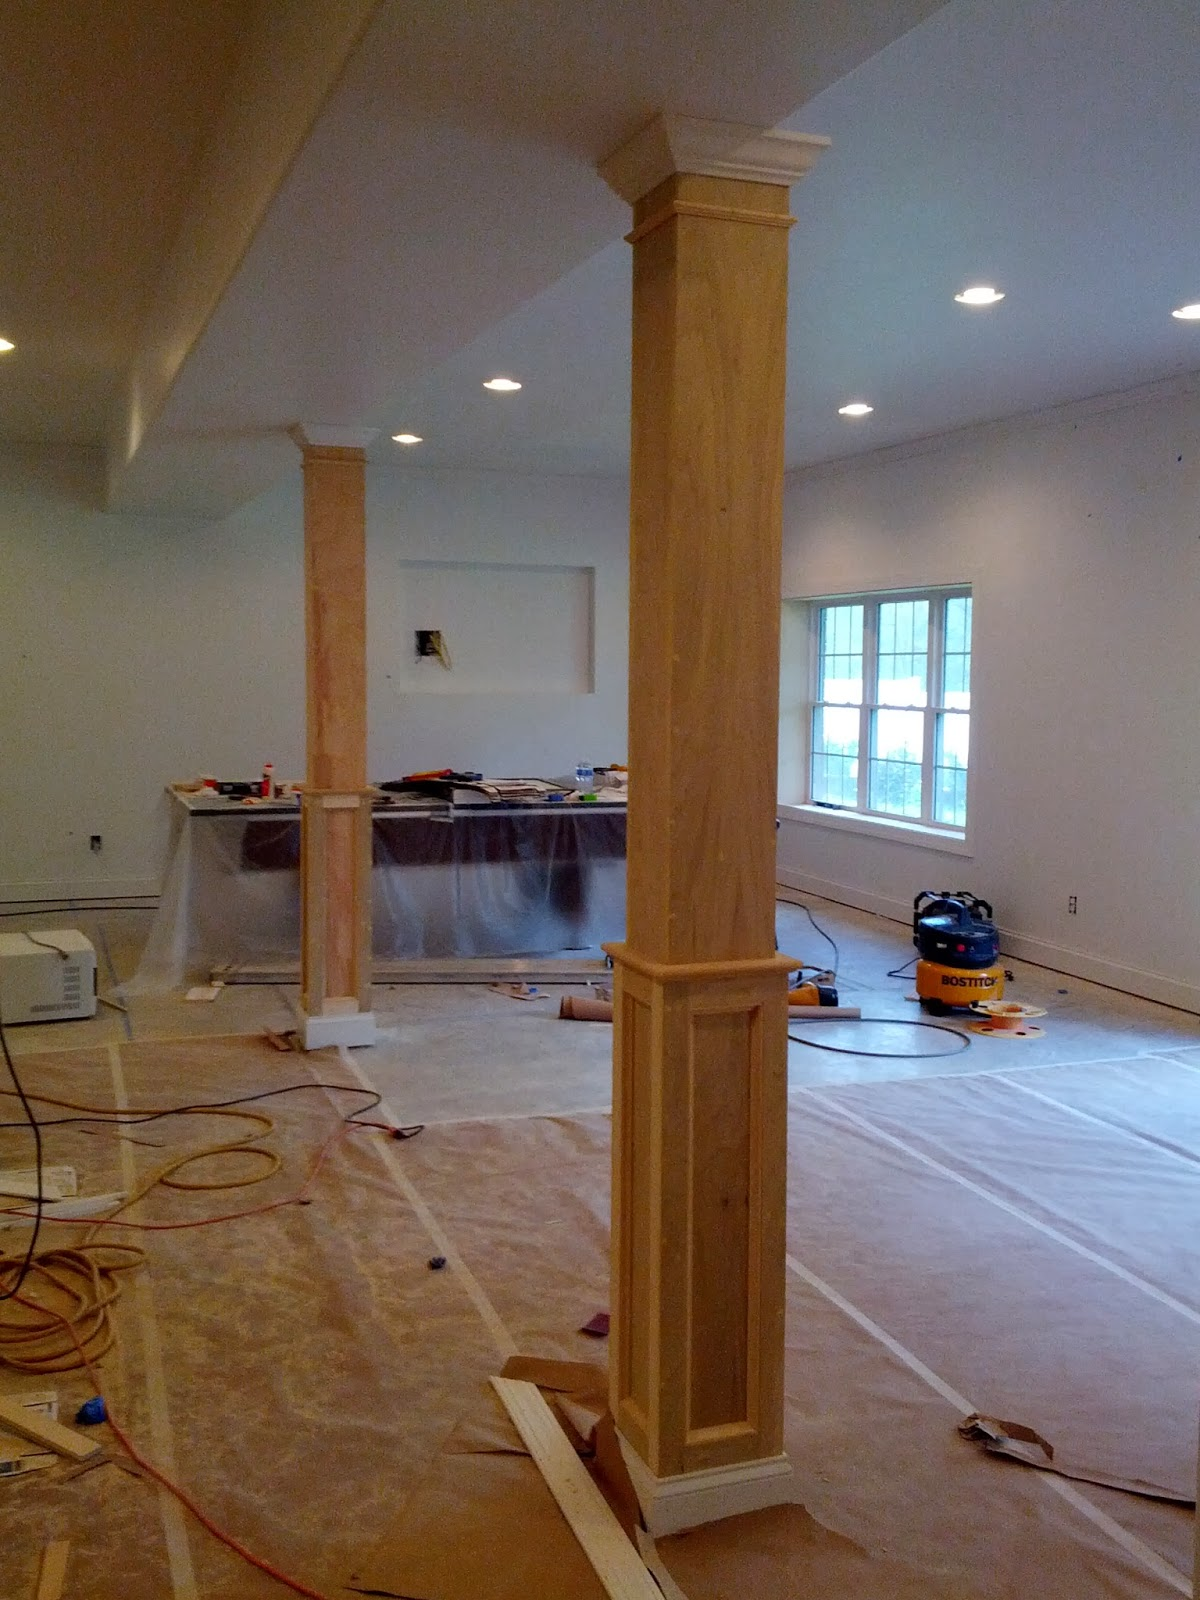 L Amp J Contractors Llc Basement Remodel